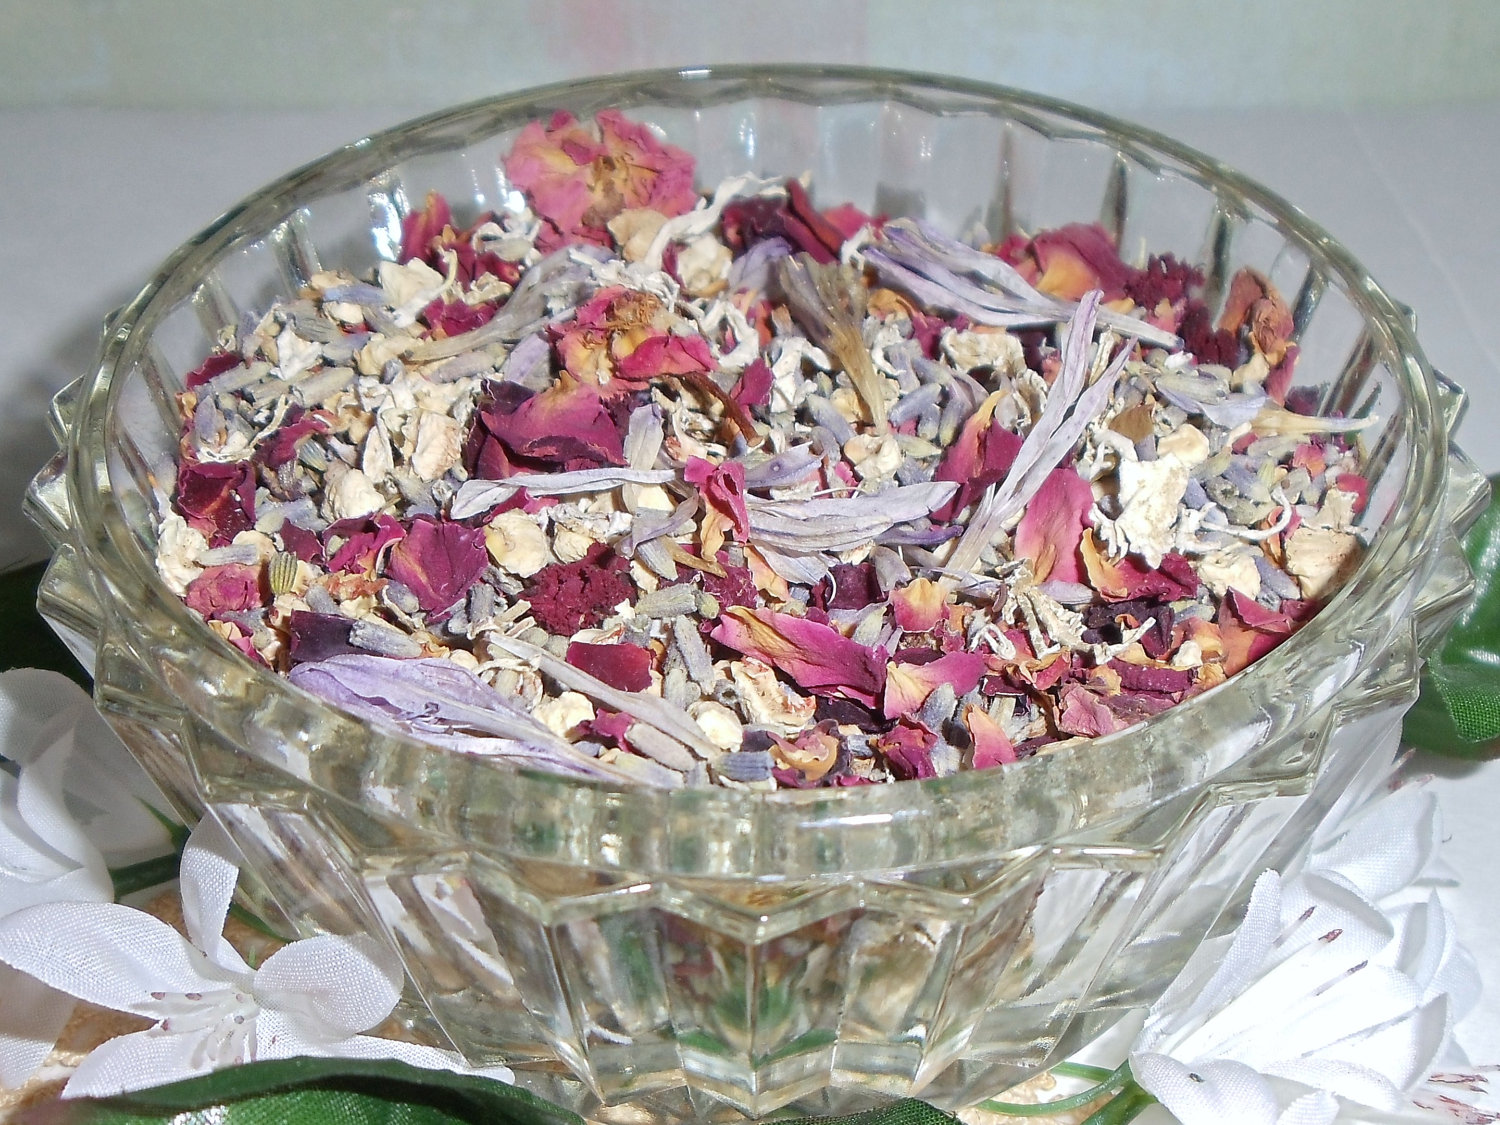 Mixing spices and scented fixatives